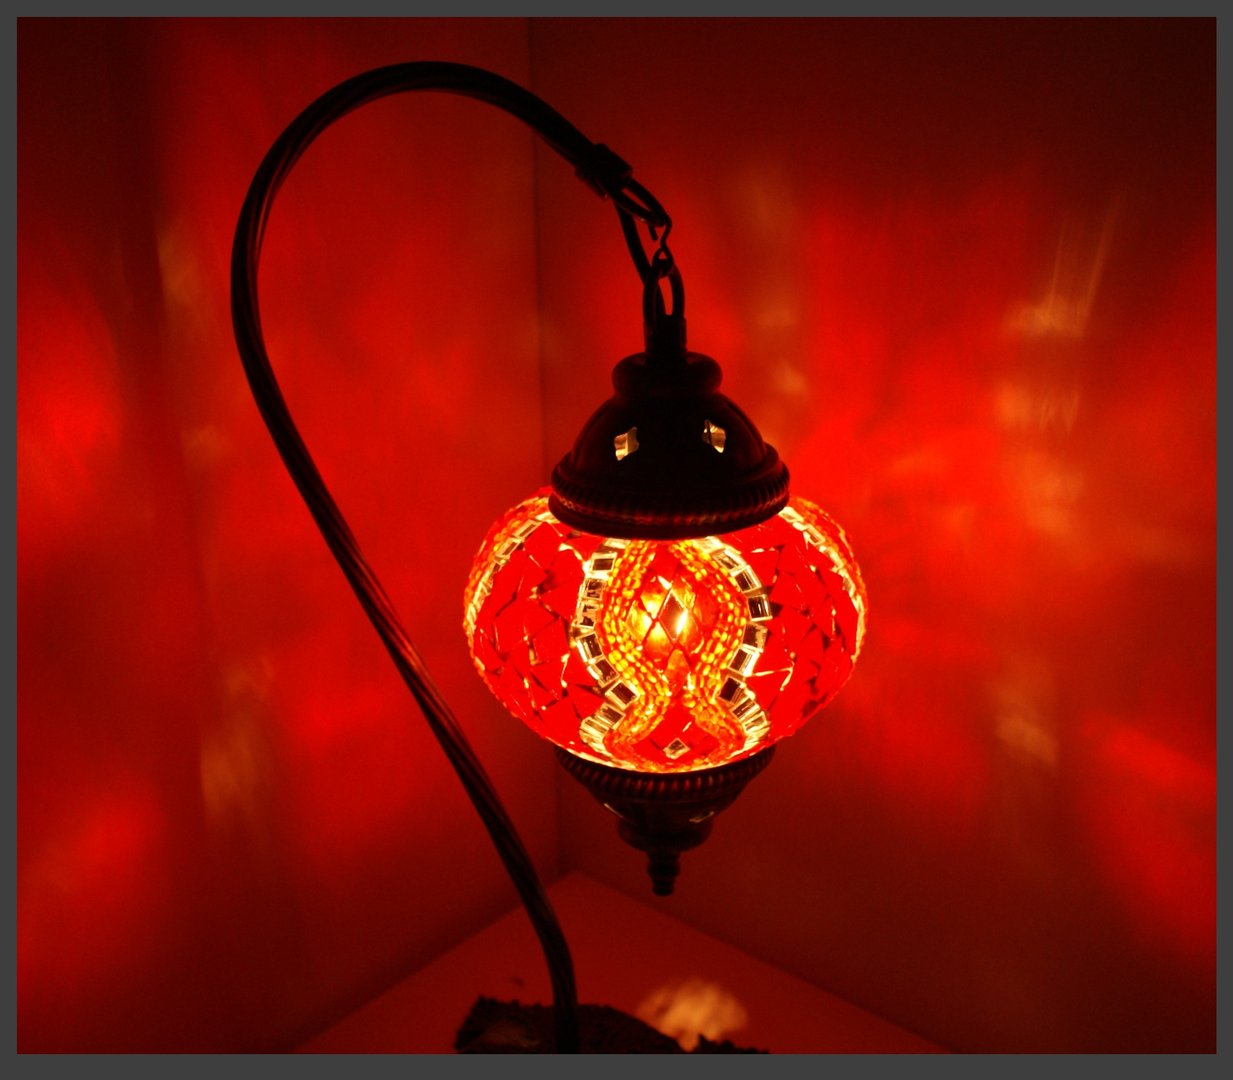 Stehlampe Rot Stehlampe M Rot Art Ms 001 Samarkand Lights